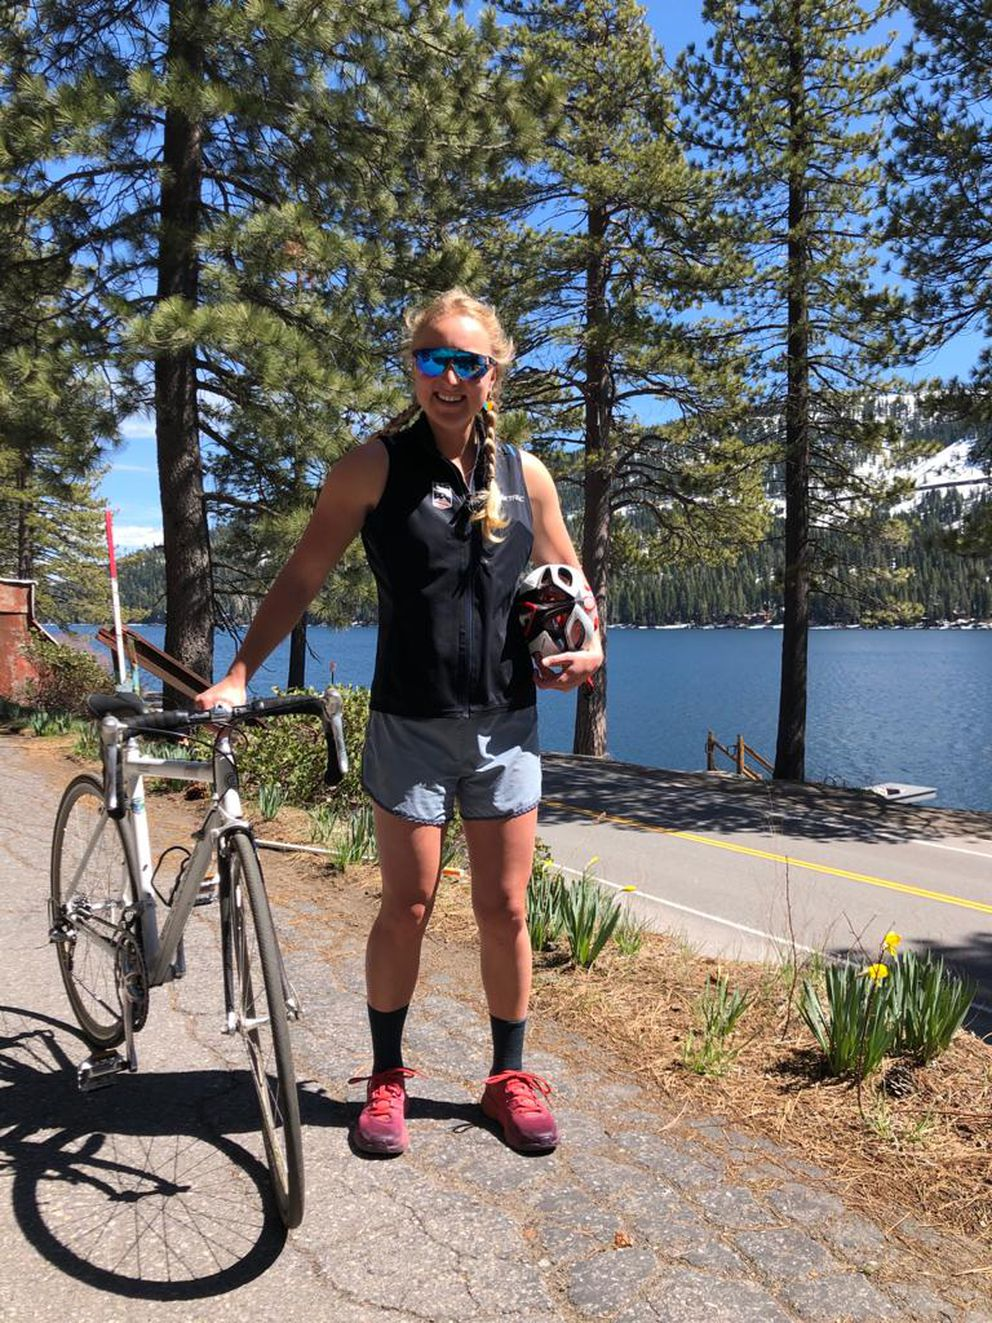 Part of Hannah Halvorsen's rehabilitation includes walks and bike rides that begin at Donner Lake near her family's home in Truckee, California. (Photo provided by Hannah Halvorsen)